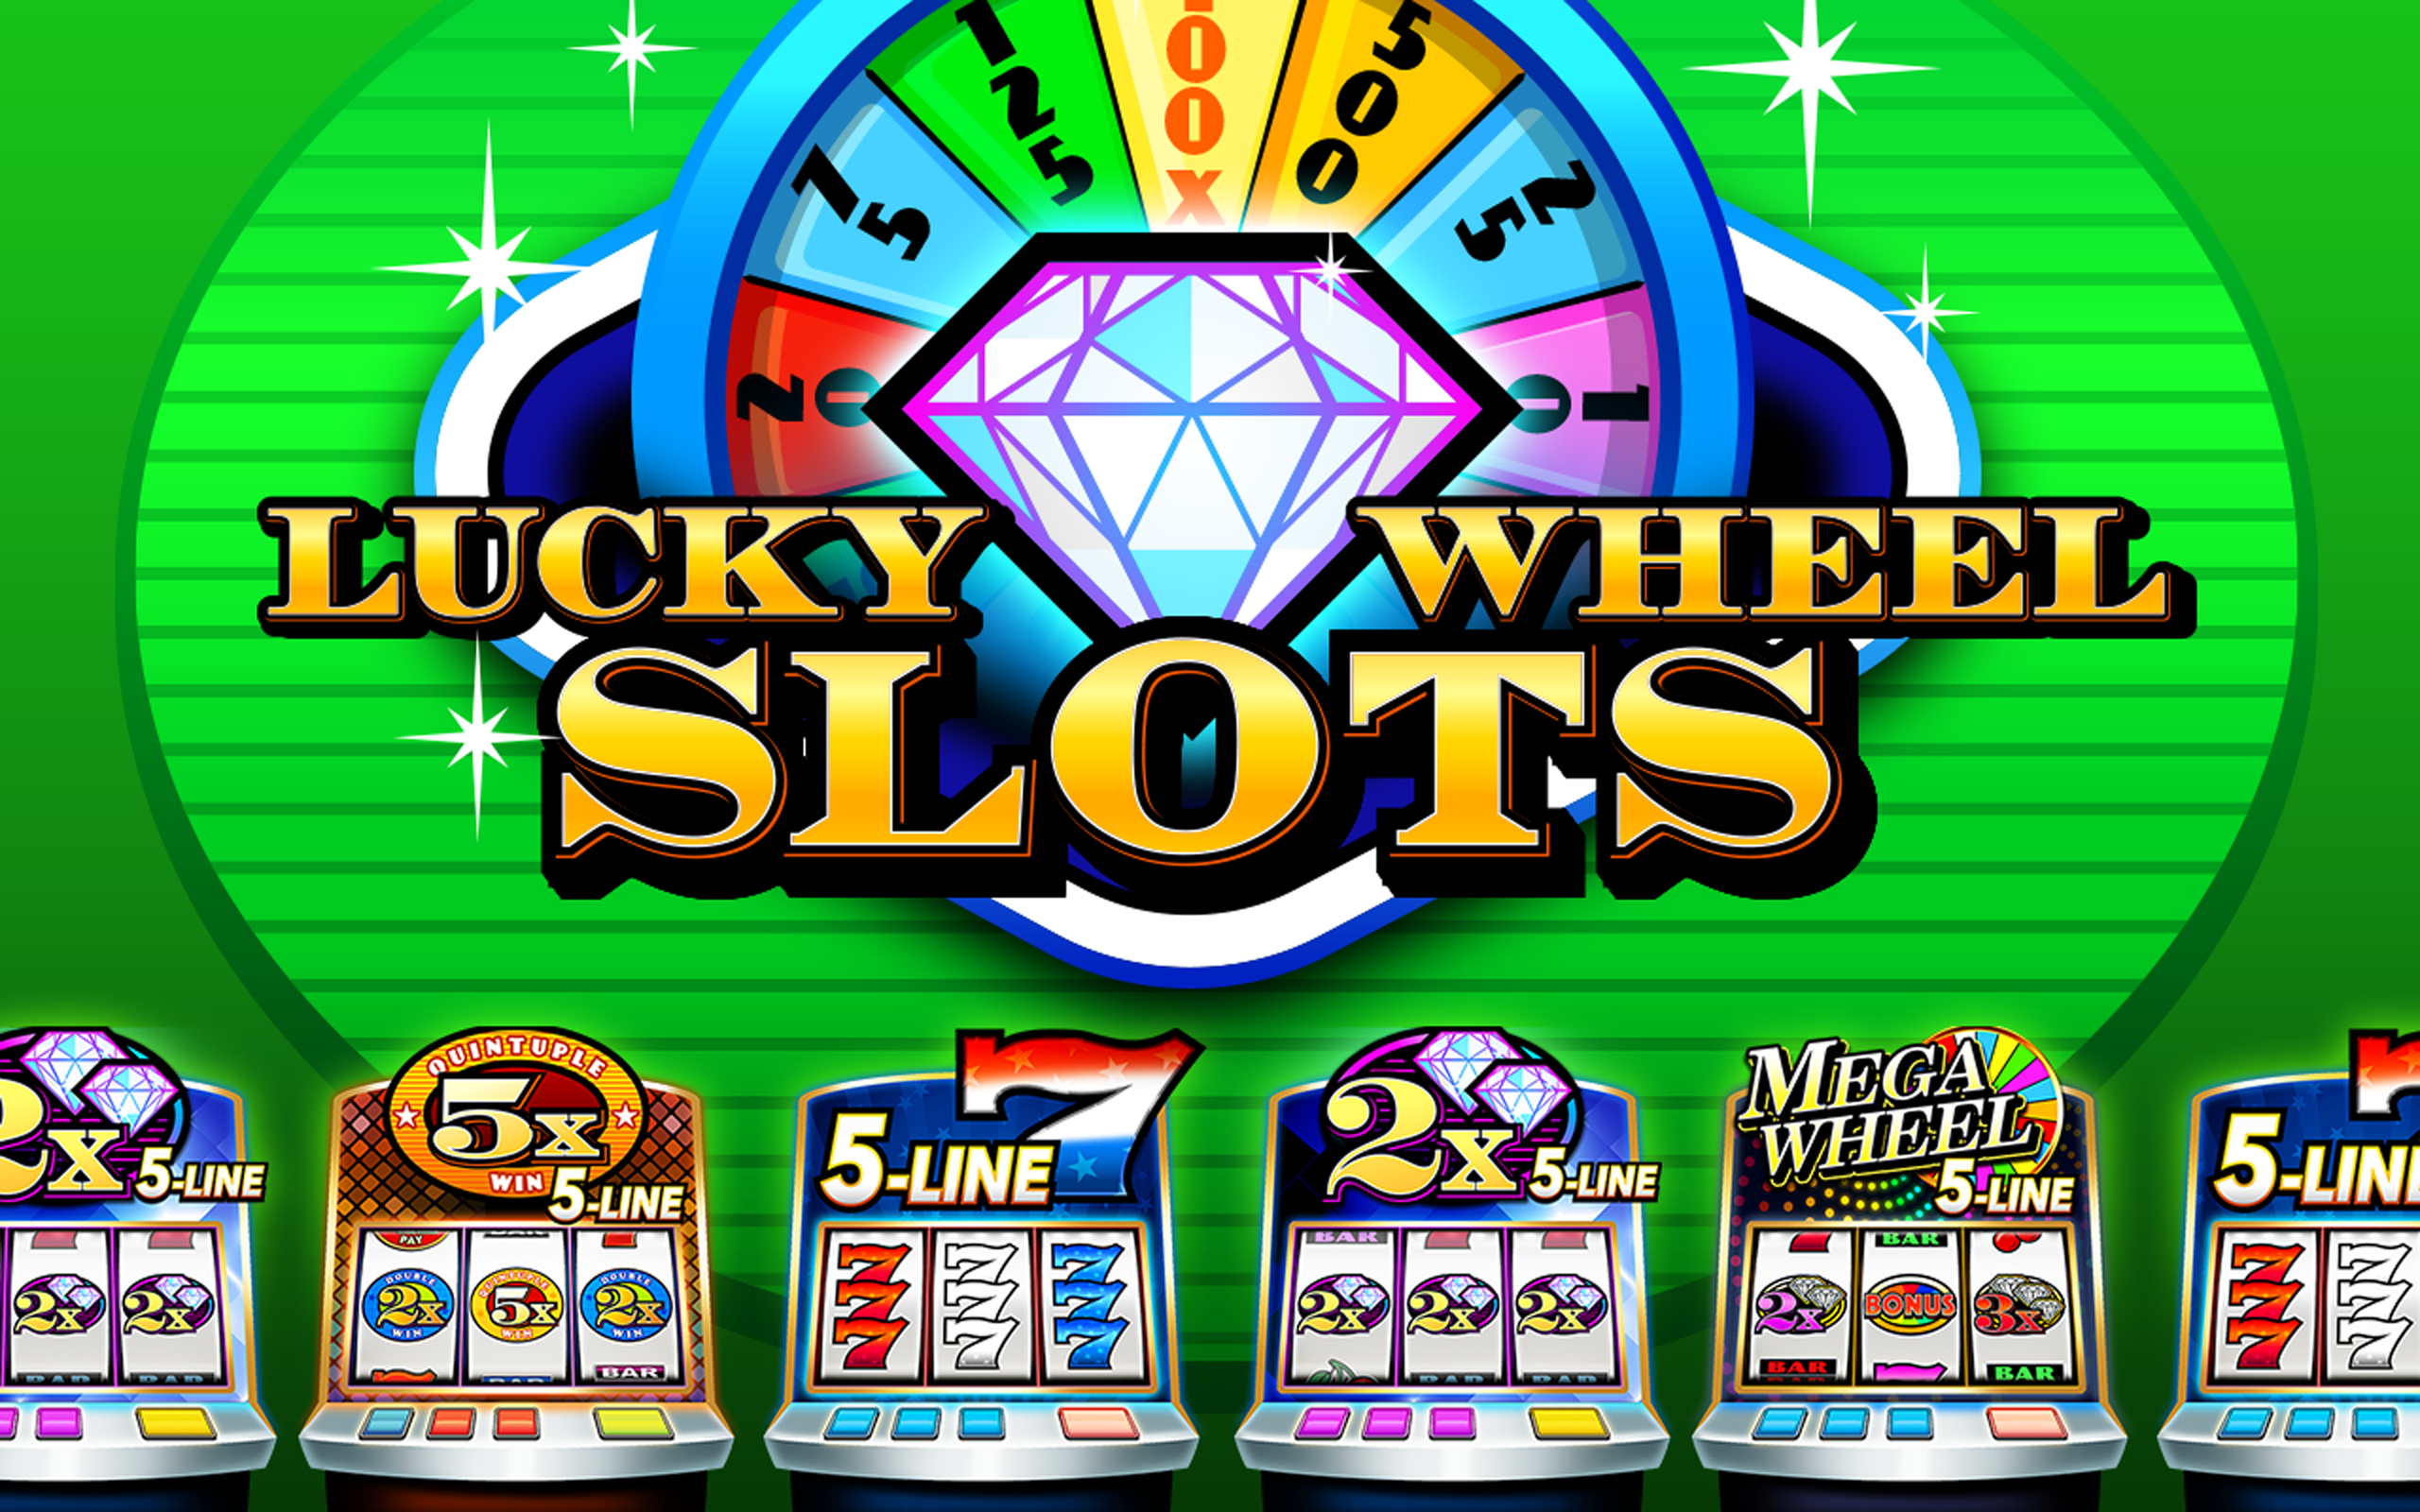 All free casino slot machines